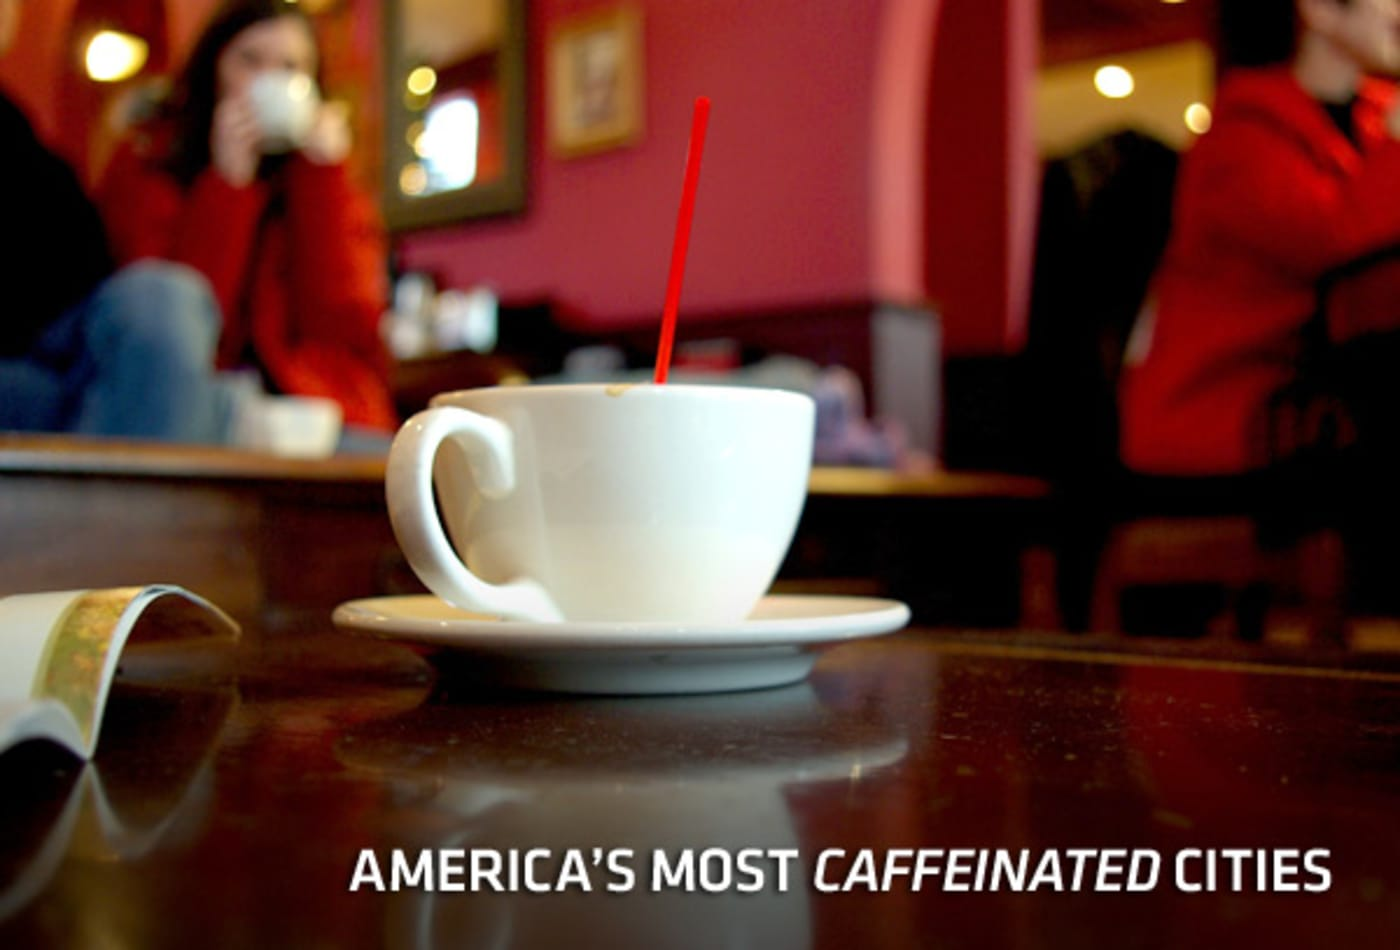 americas_most_caffeinated_cities_cover.jpg